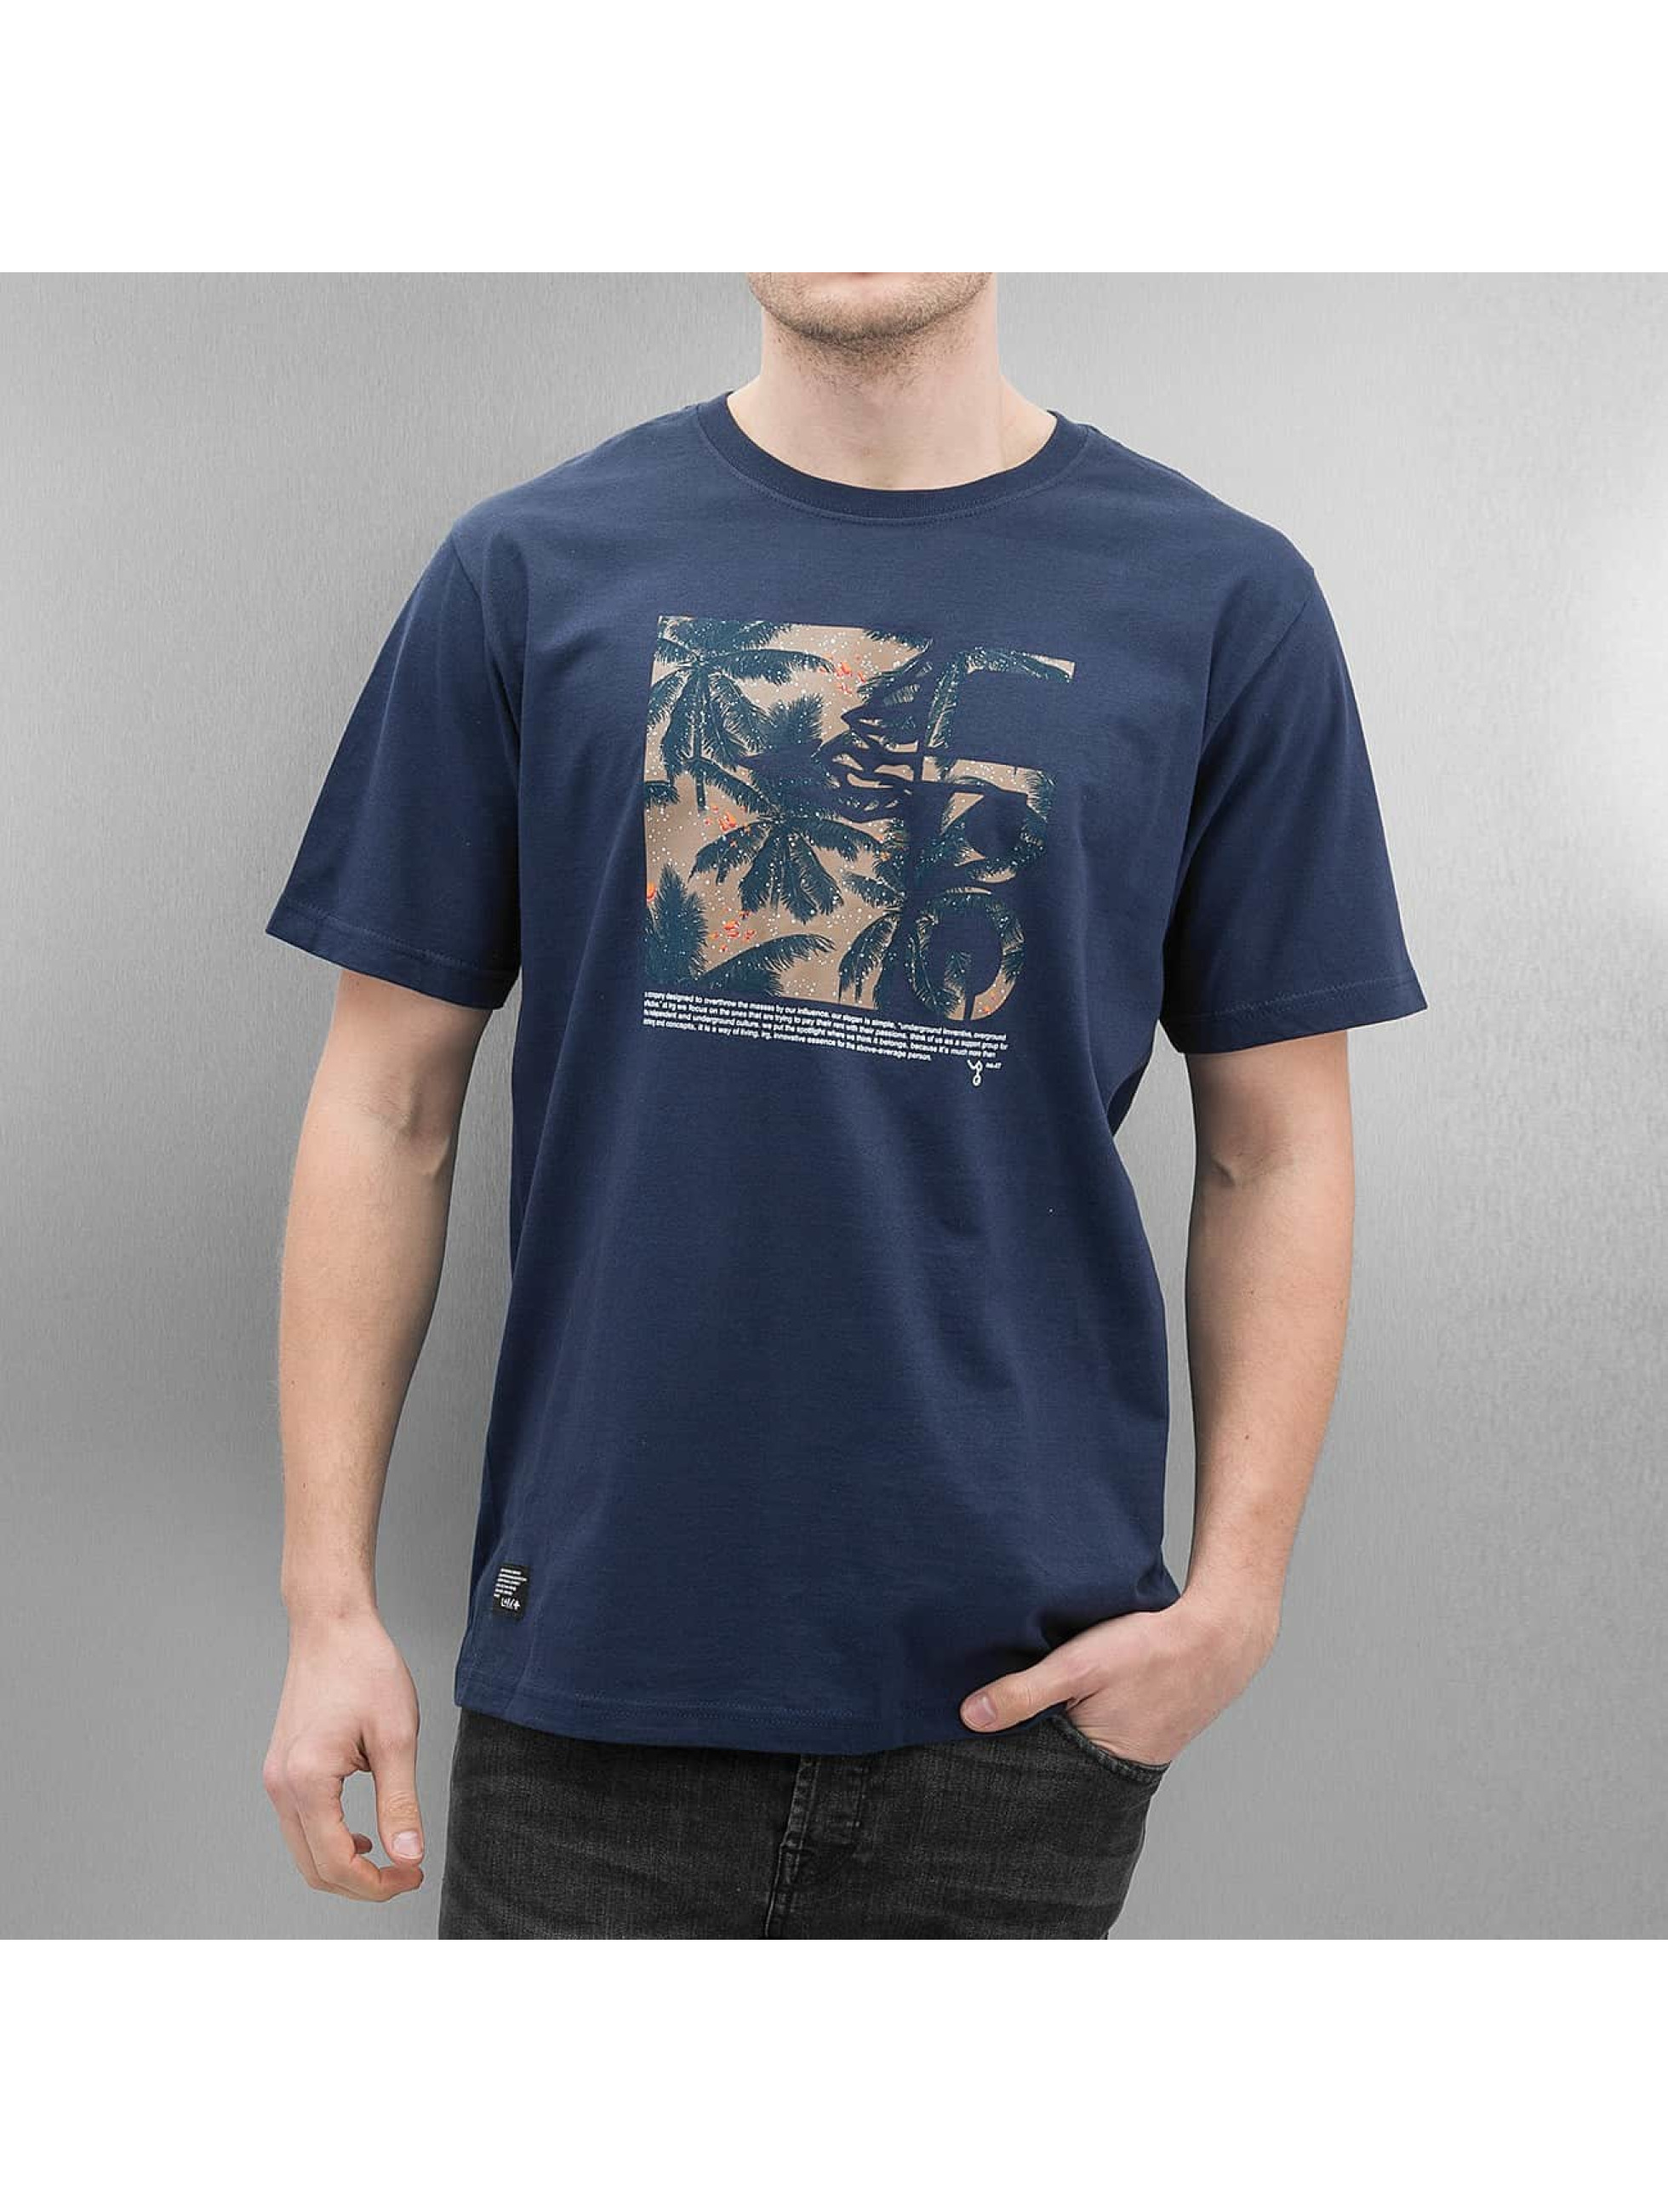 LRG Stay Palm Fill T-Shirt Navy Sale Angebote